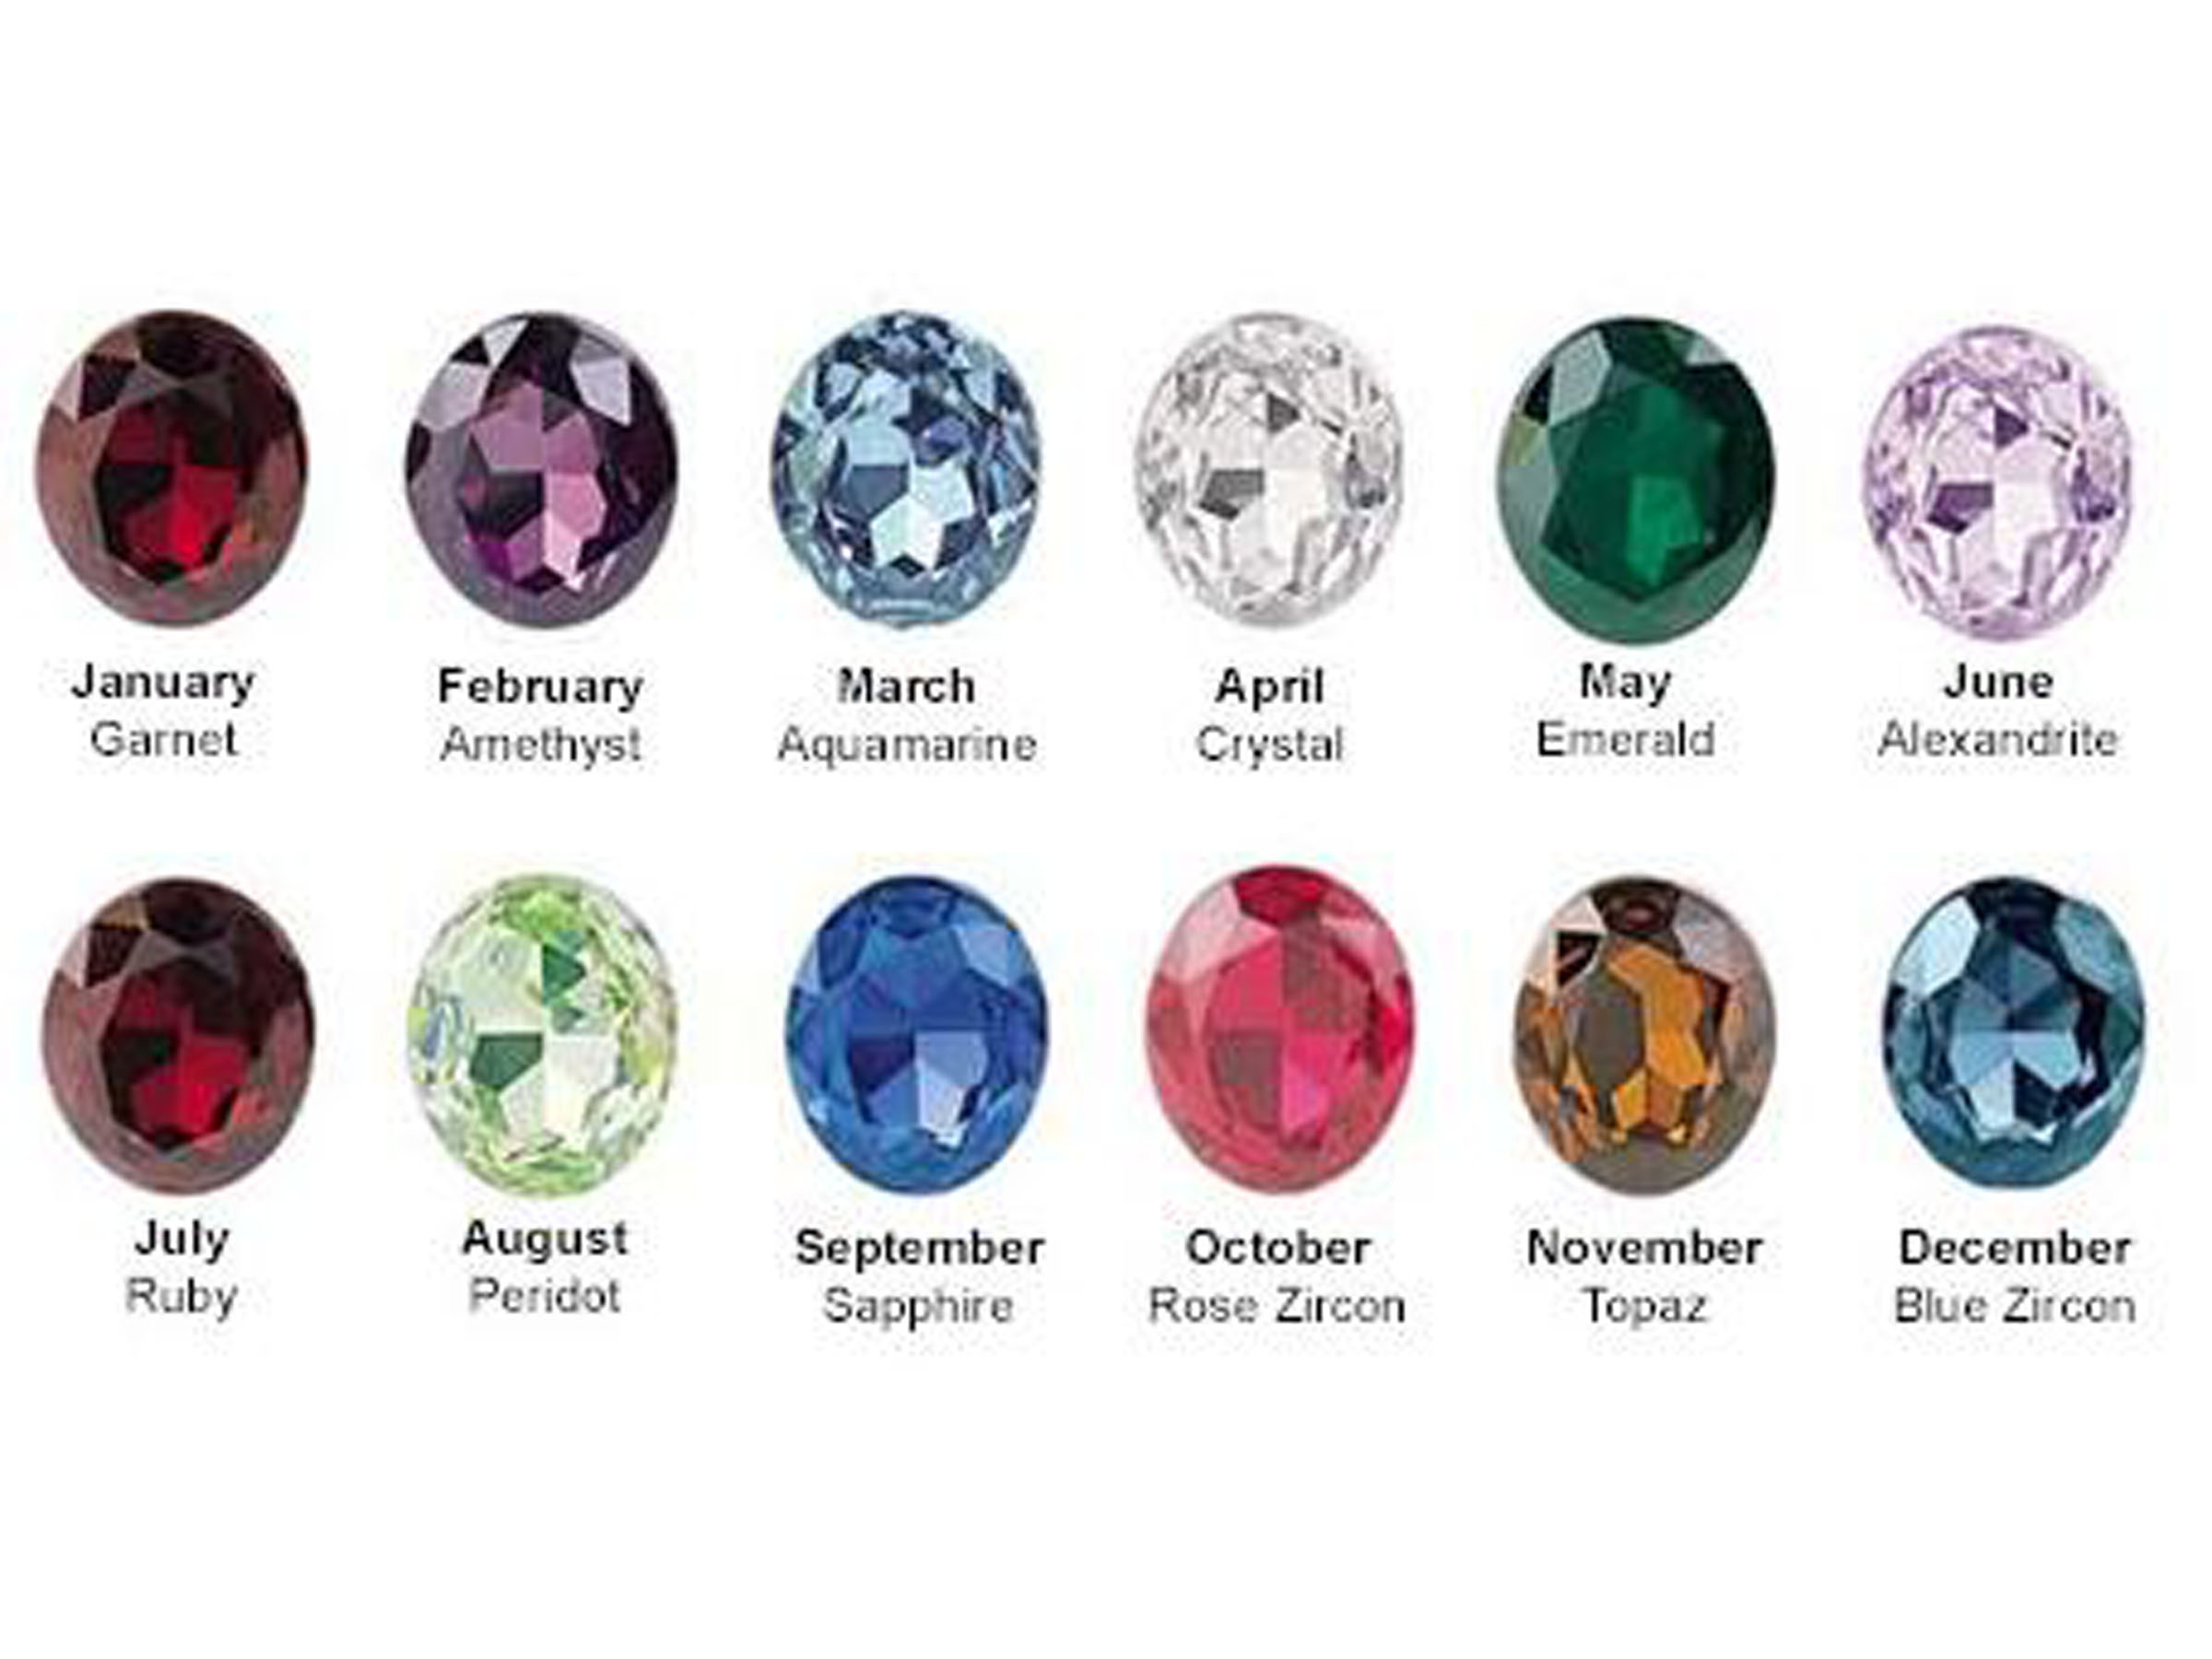 birthstones images birthstones chart hd wallpaper and